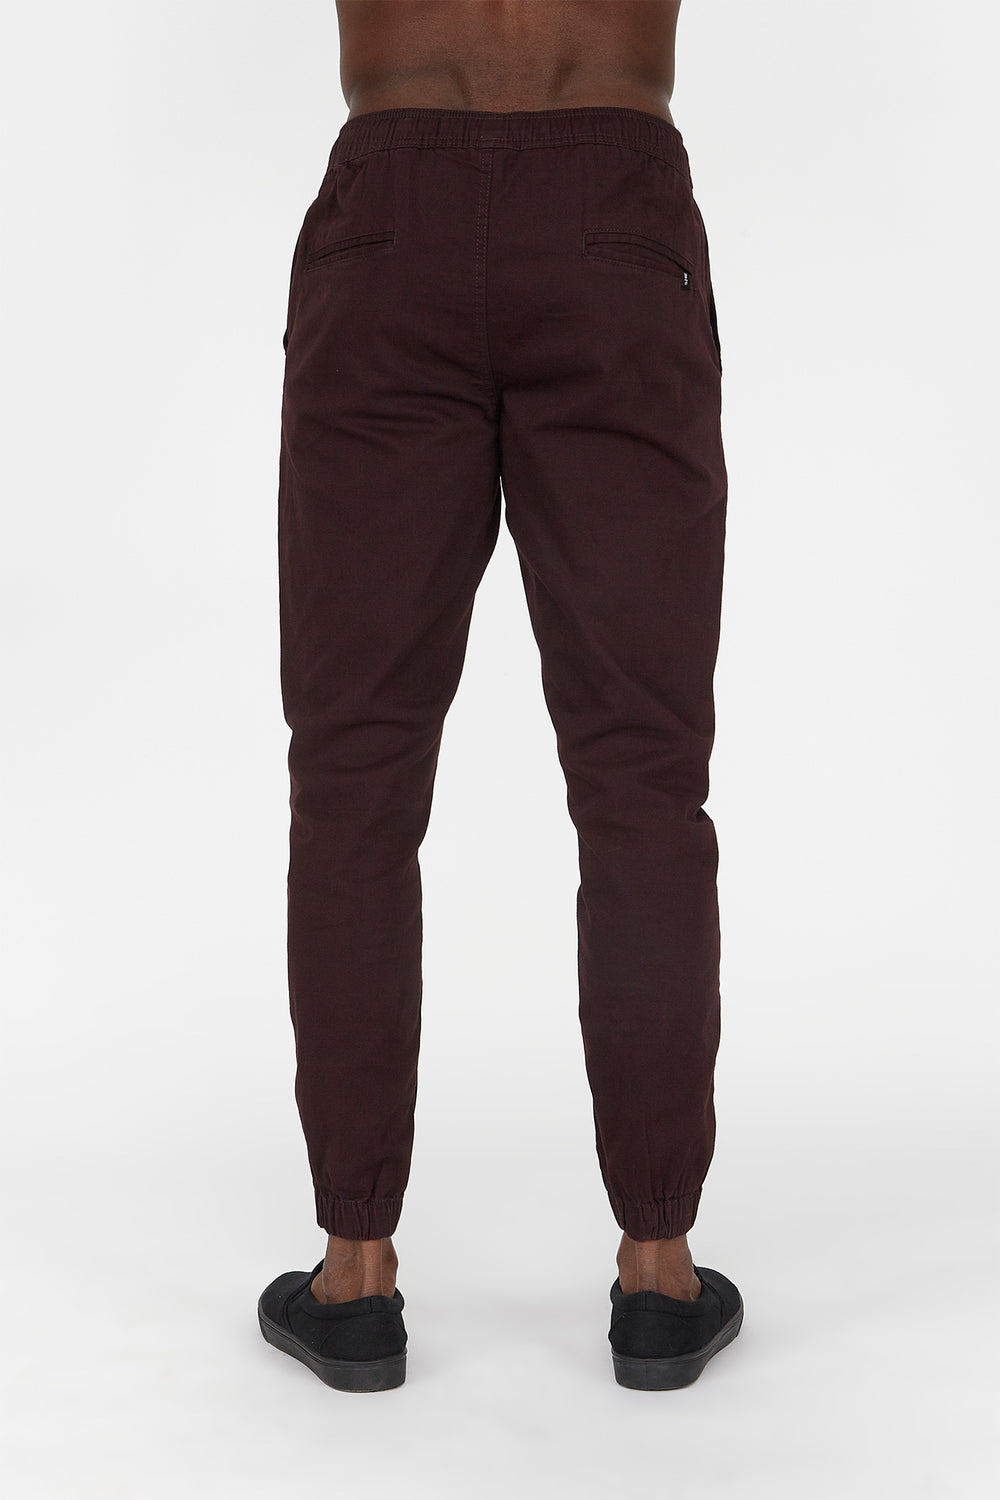 West49 Mens Jogger Burgundy